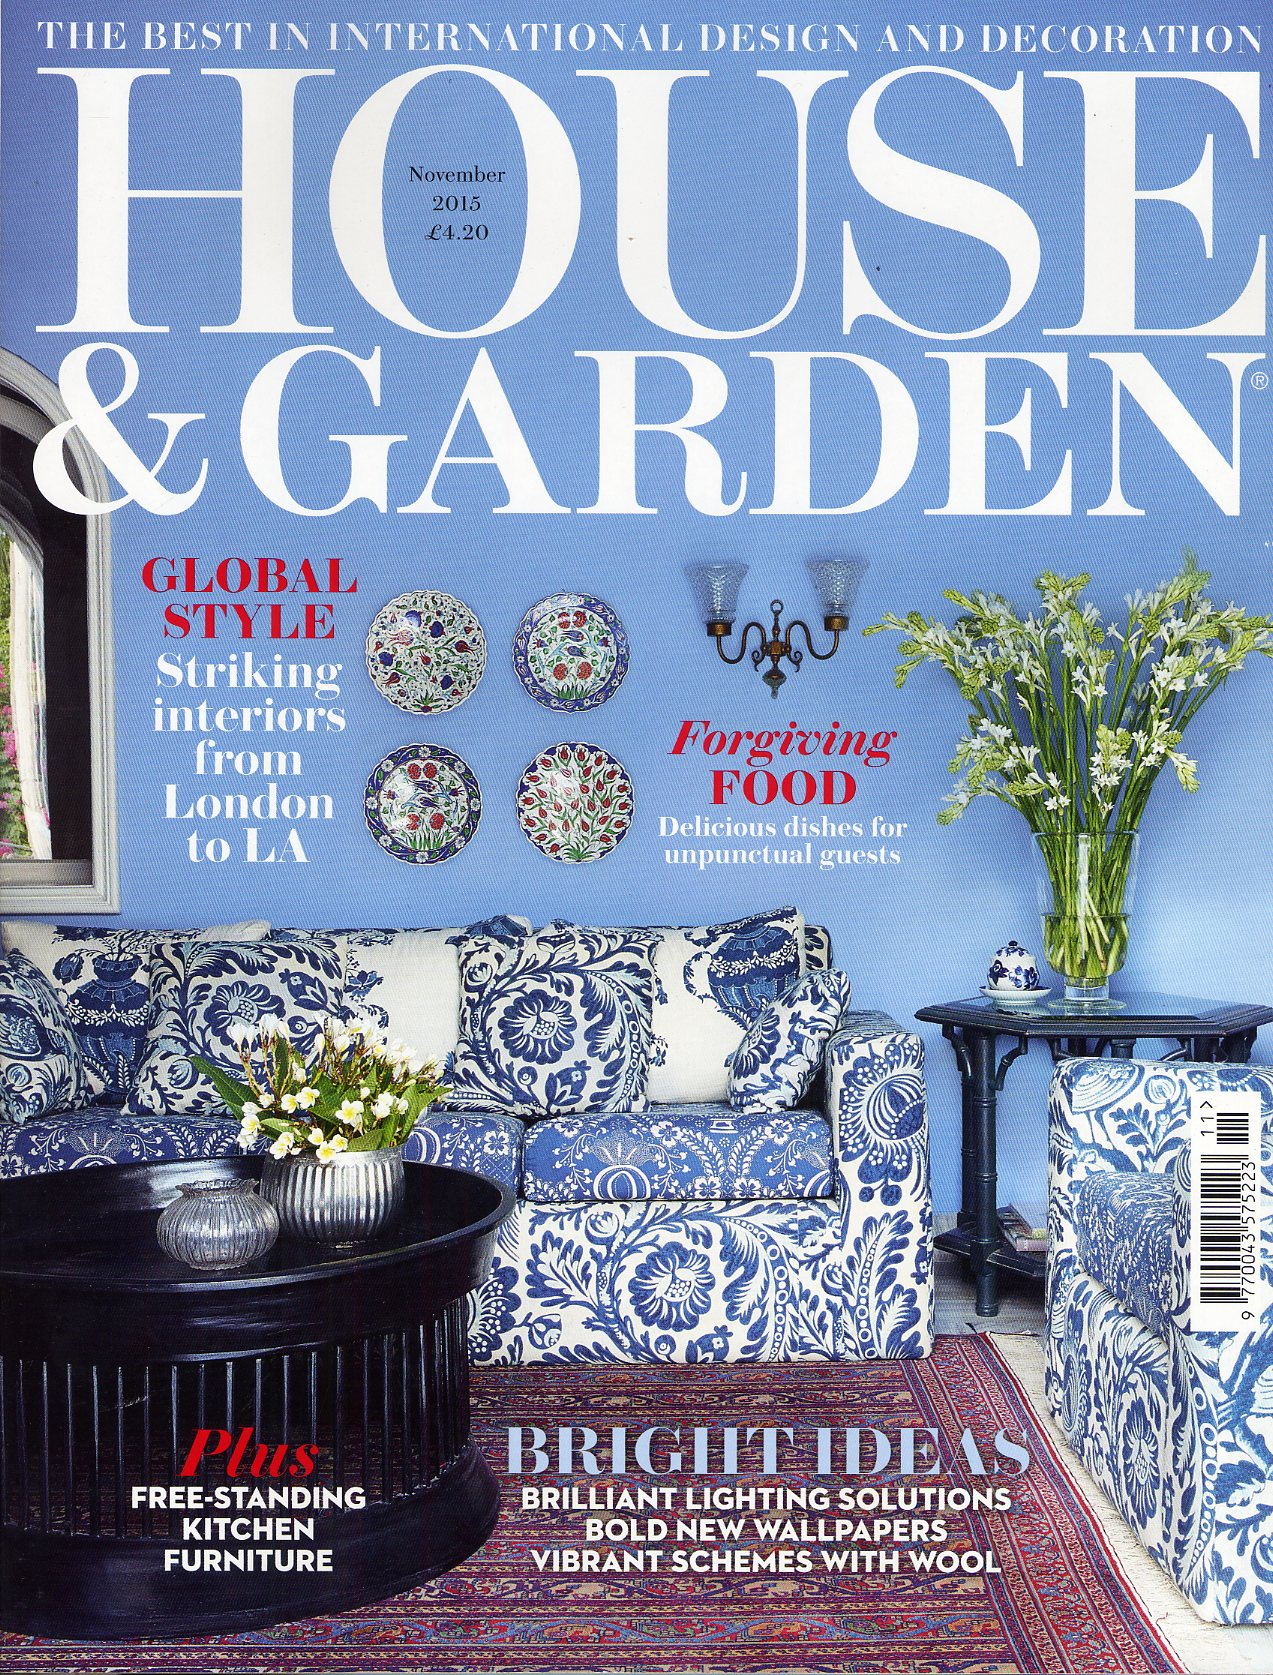 House & Garden magazine press coverage